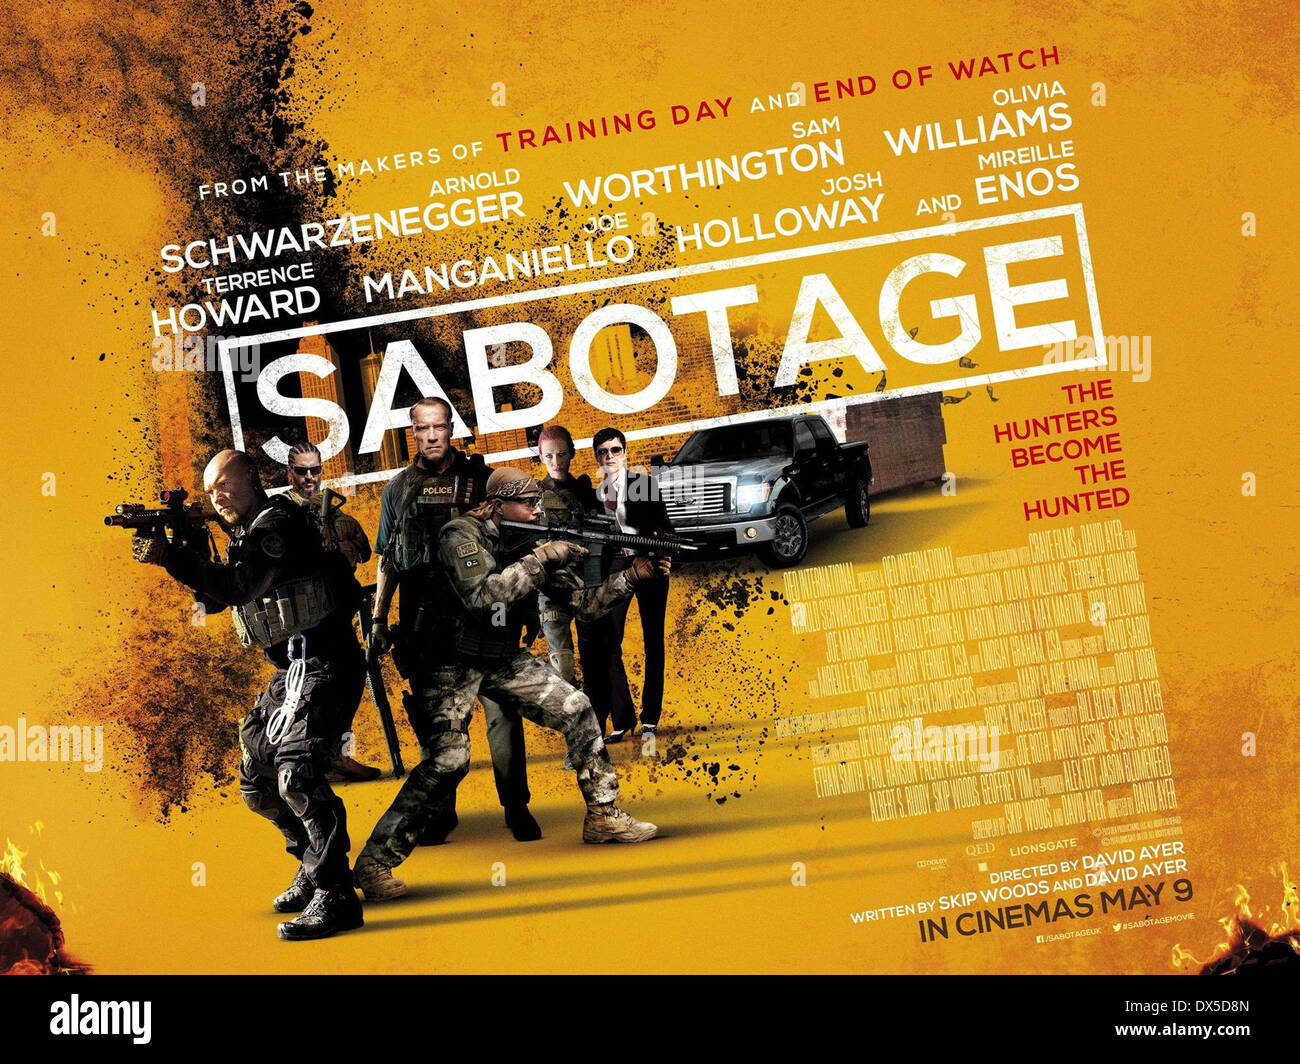 SABOTAGE (POSTER) (2014) DAVID AYER (DIR) MOVIESTORE COLLECTION LTD - Stock Image